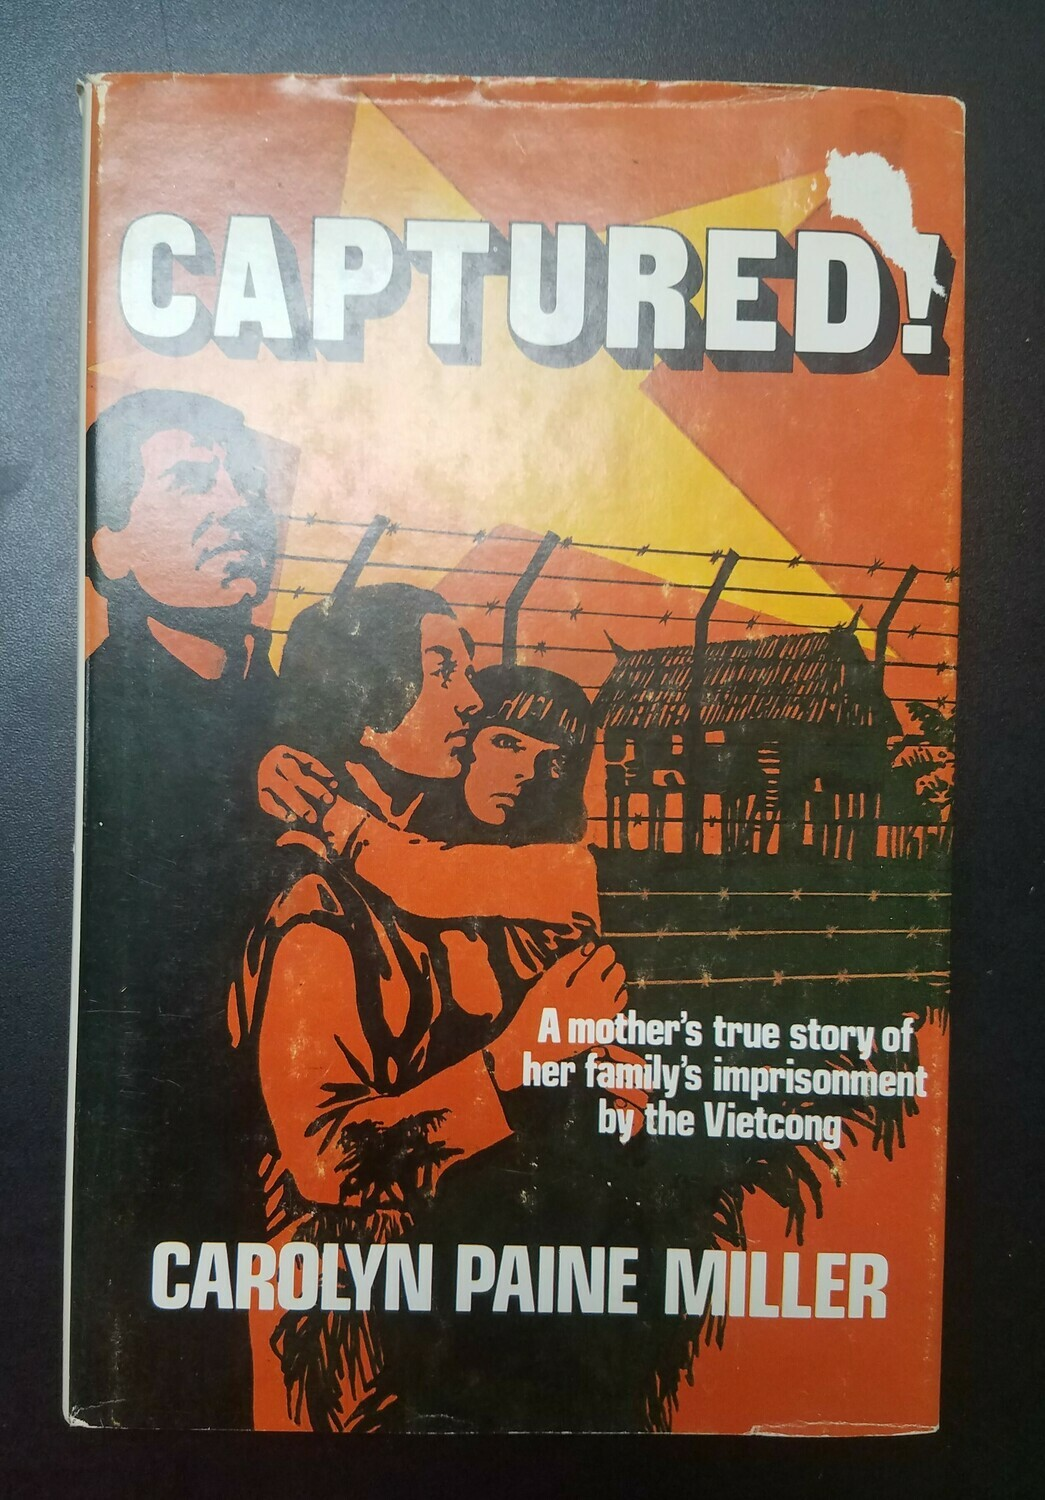 Captured! by Carolyn Paine Miller